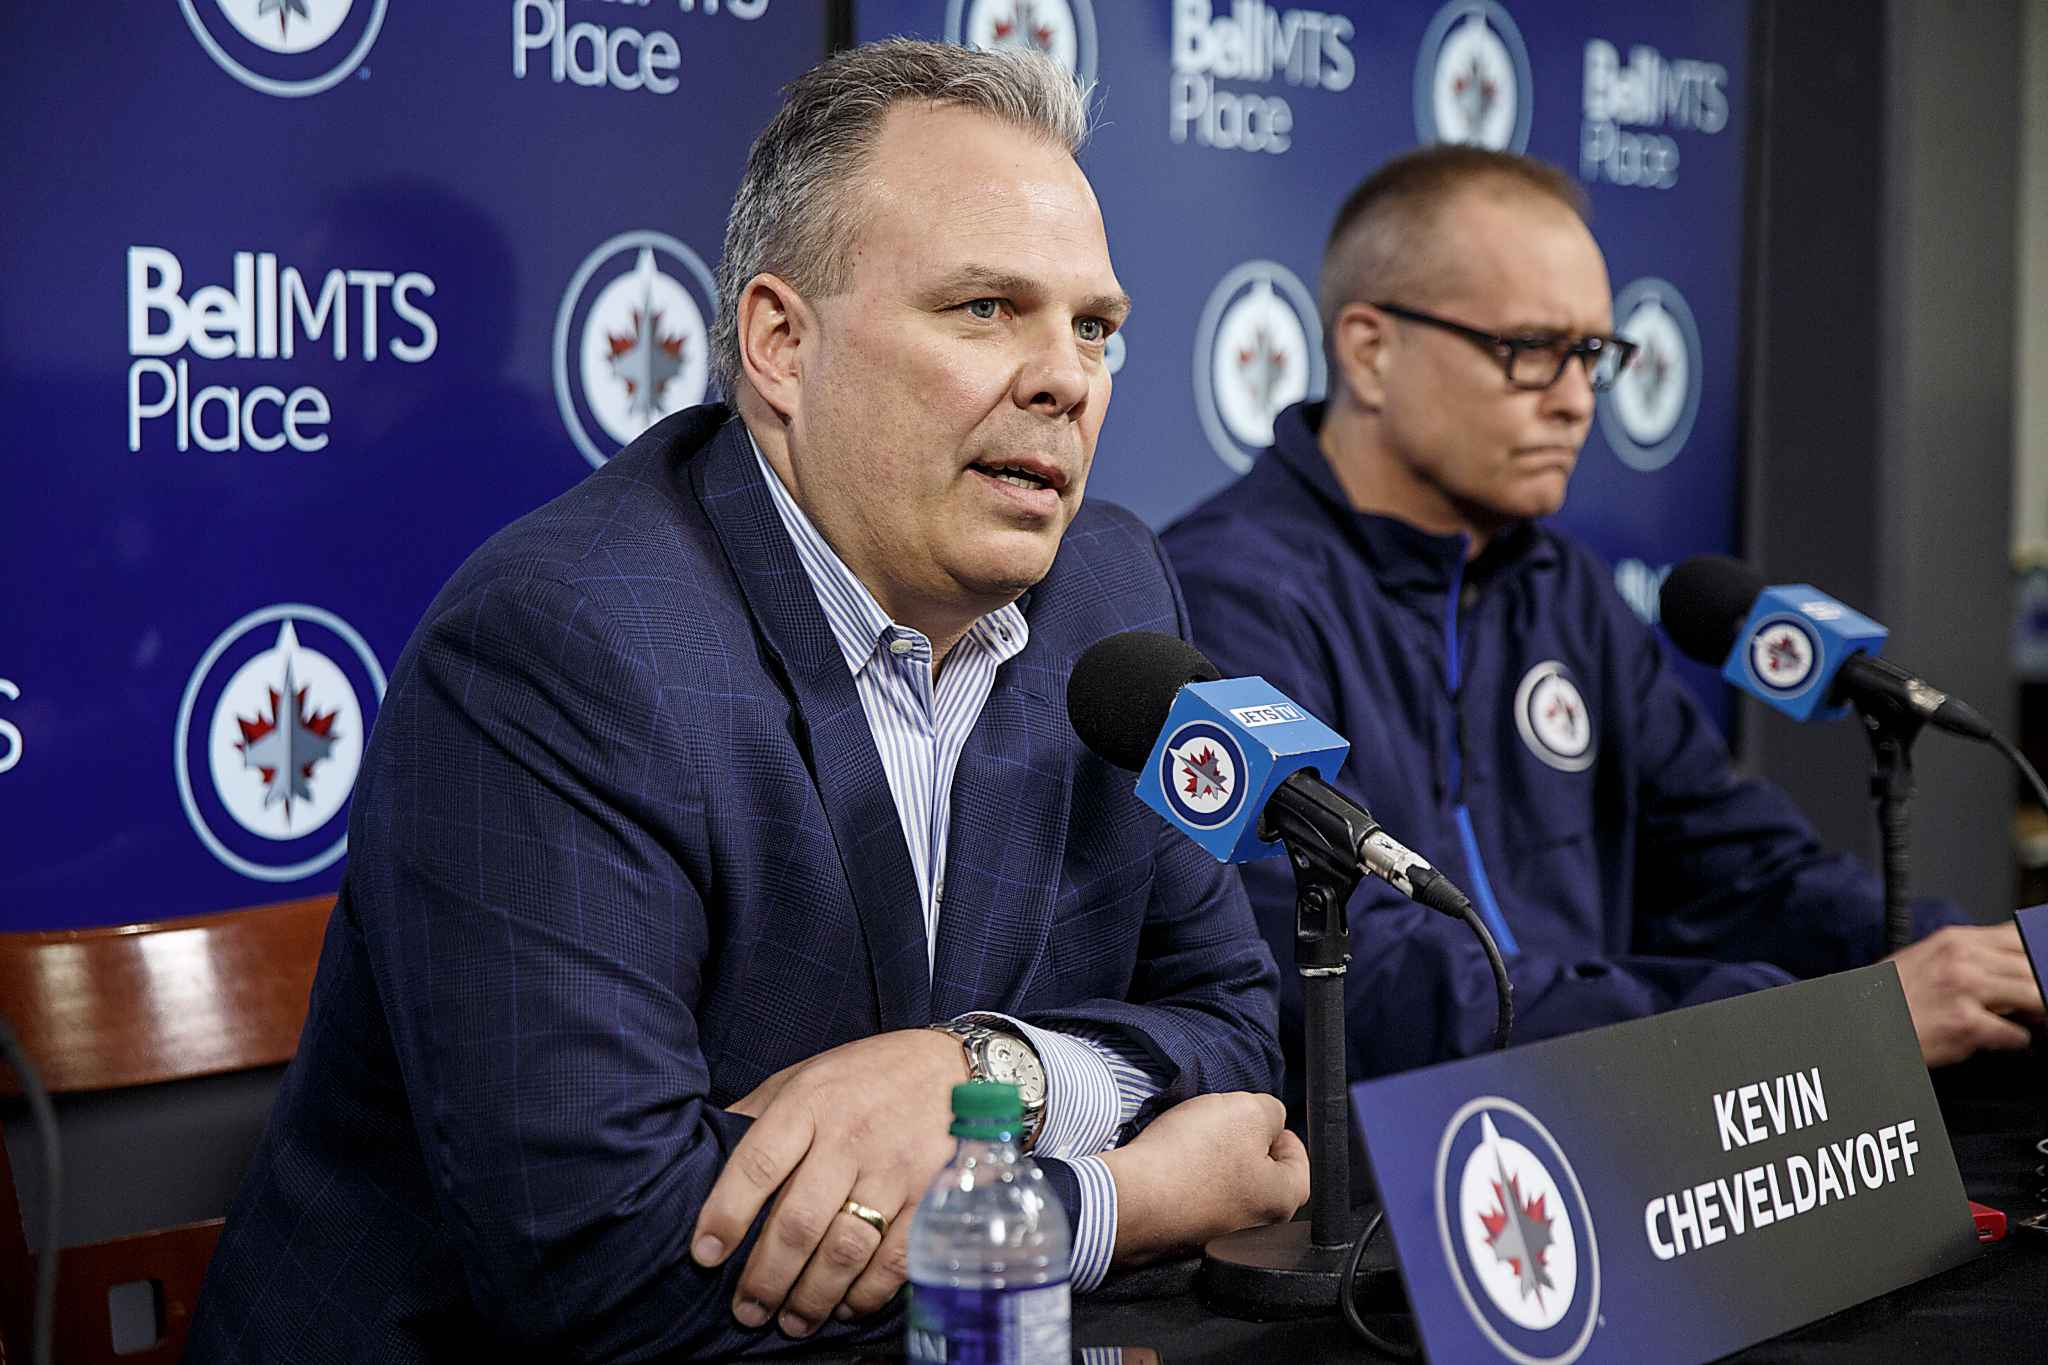 Winnipeg Jets' head coach Paul Maurice (right) and GM Kevin Cheveldayoff during the final media call of the 2017-18 season.